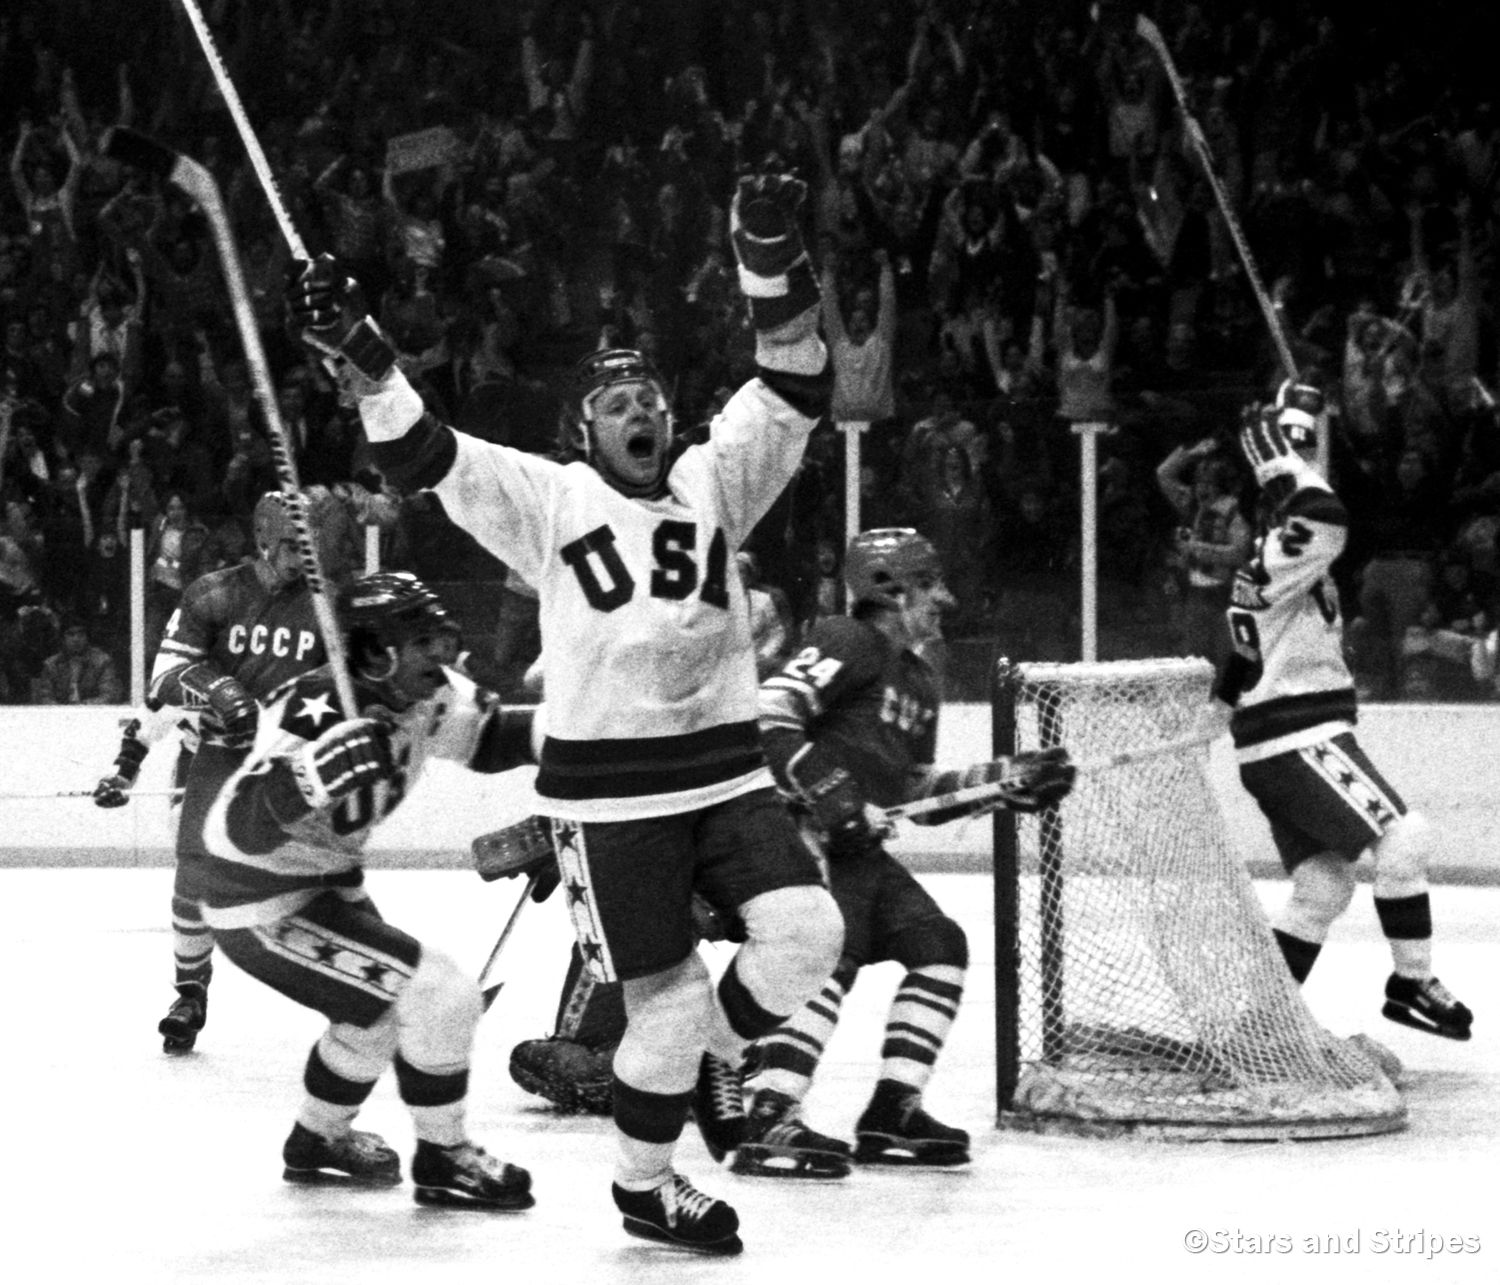 U S Hockey Team Completes The Miracle On Ice With 4 2 Win Over Finland For Olympic Gold New York Daily News